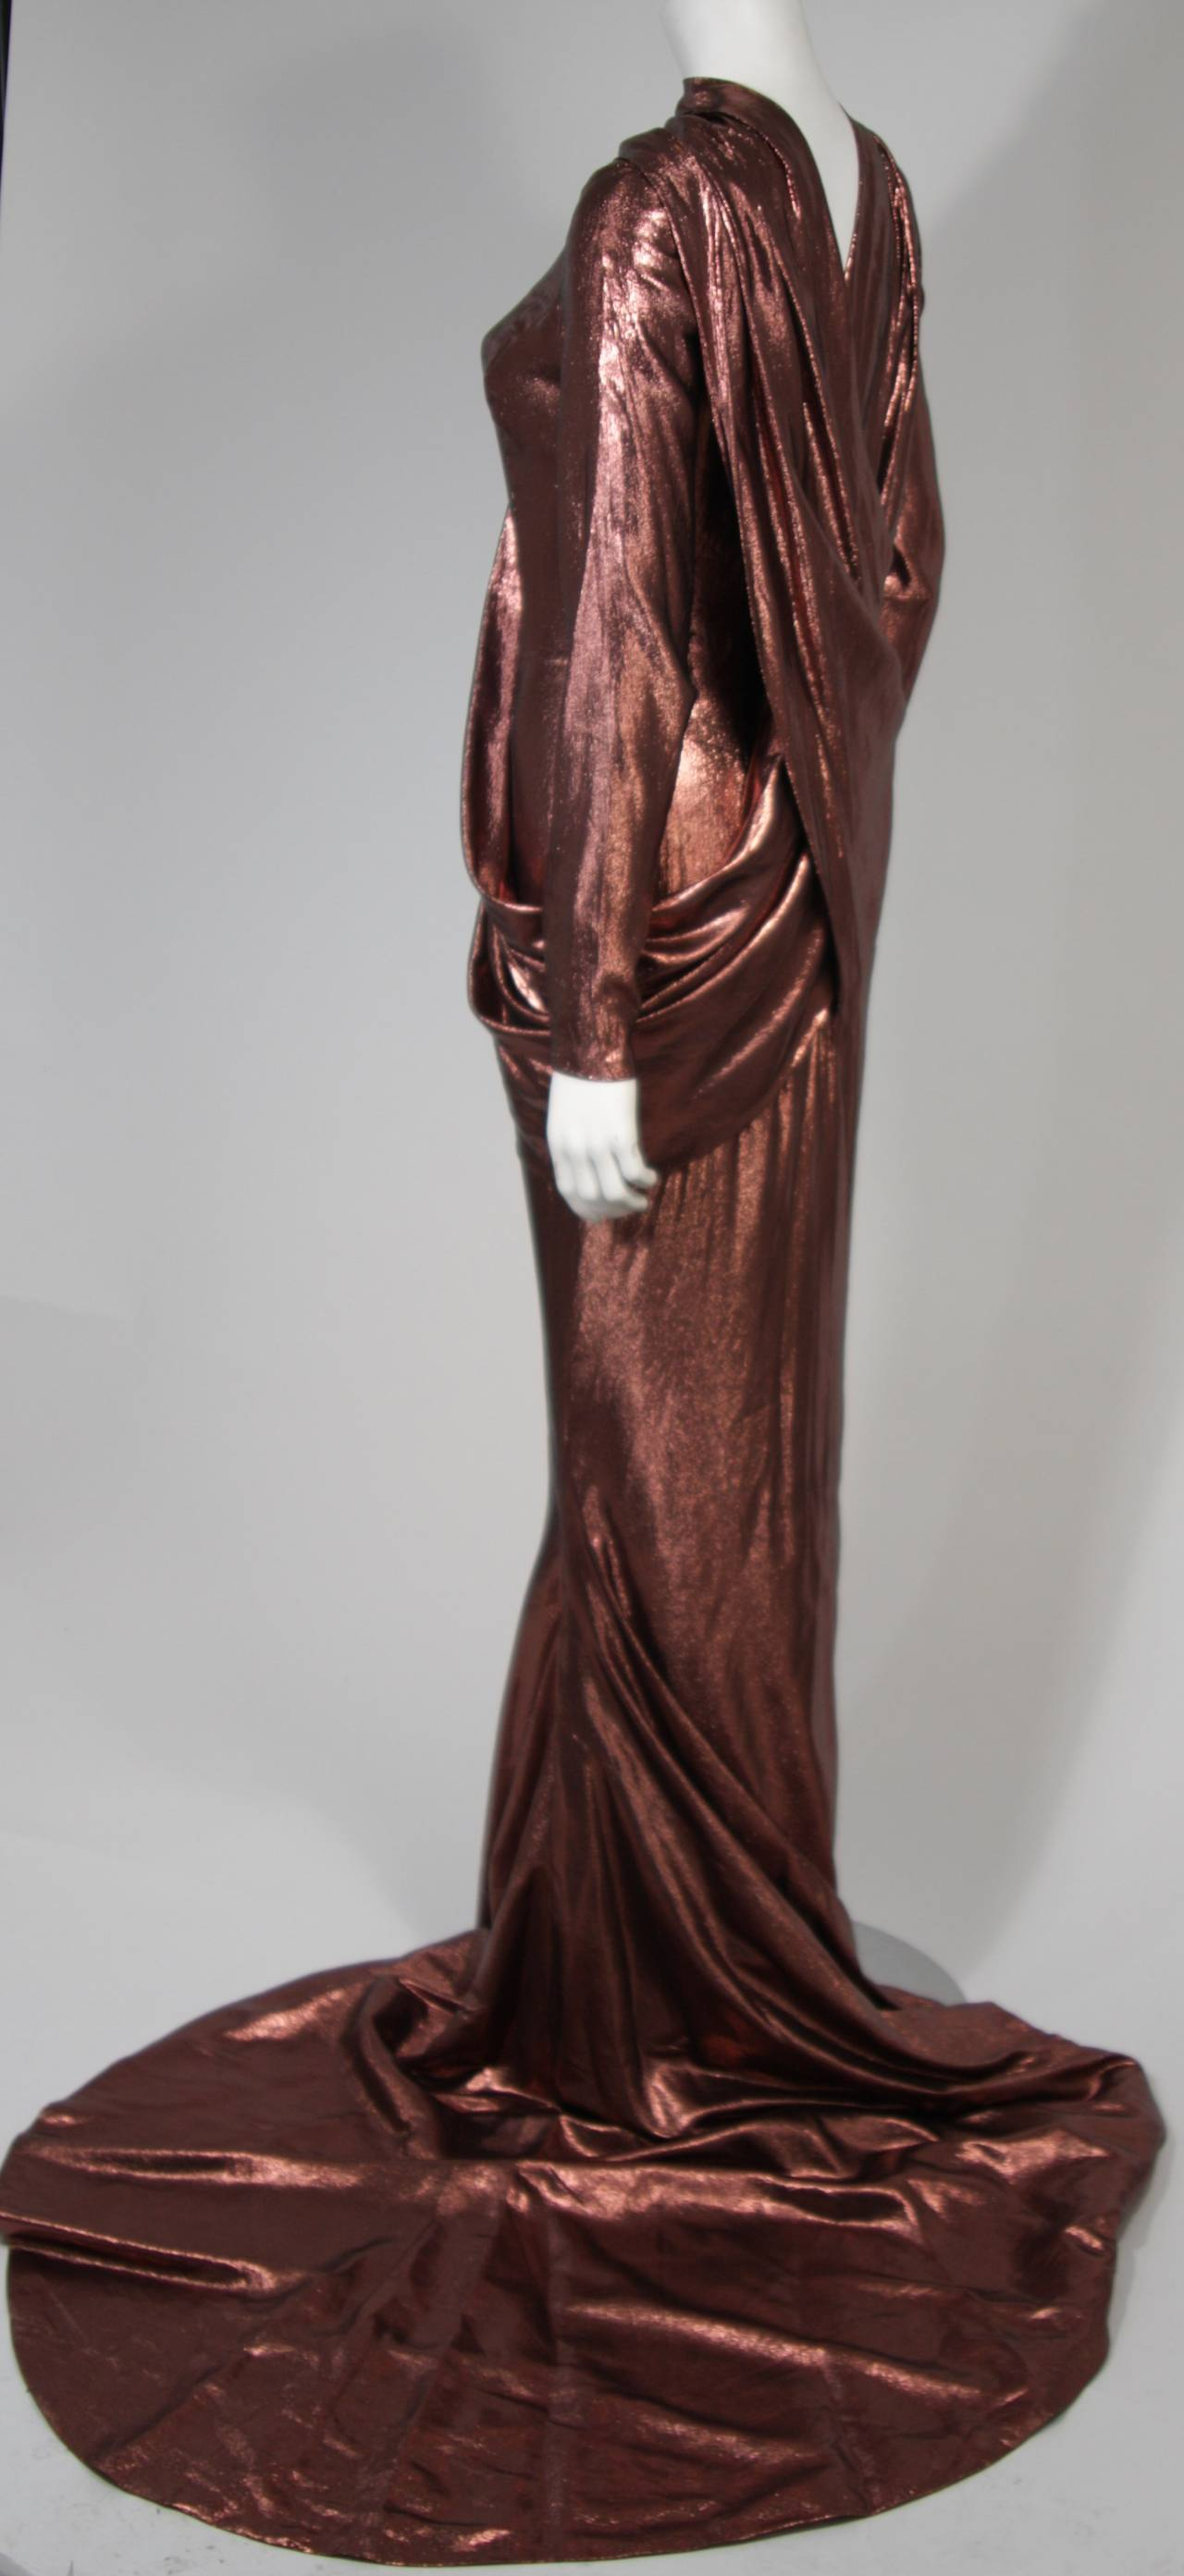 Pierre Balmain Runway Couture Copper Metallic Silk Gown Size Small Circa 1980's In Excellent Condition For Sale In Los Angeles, CA